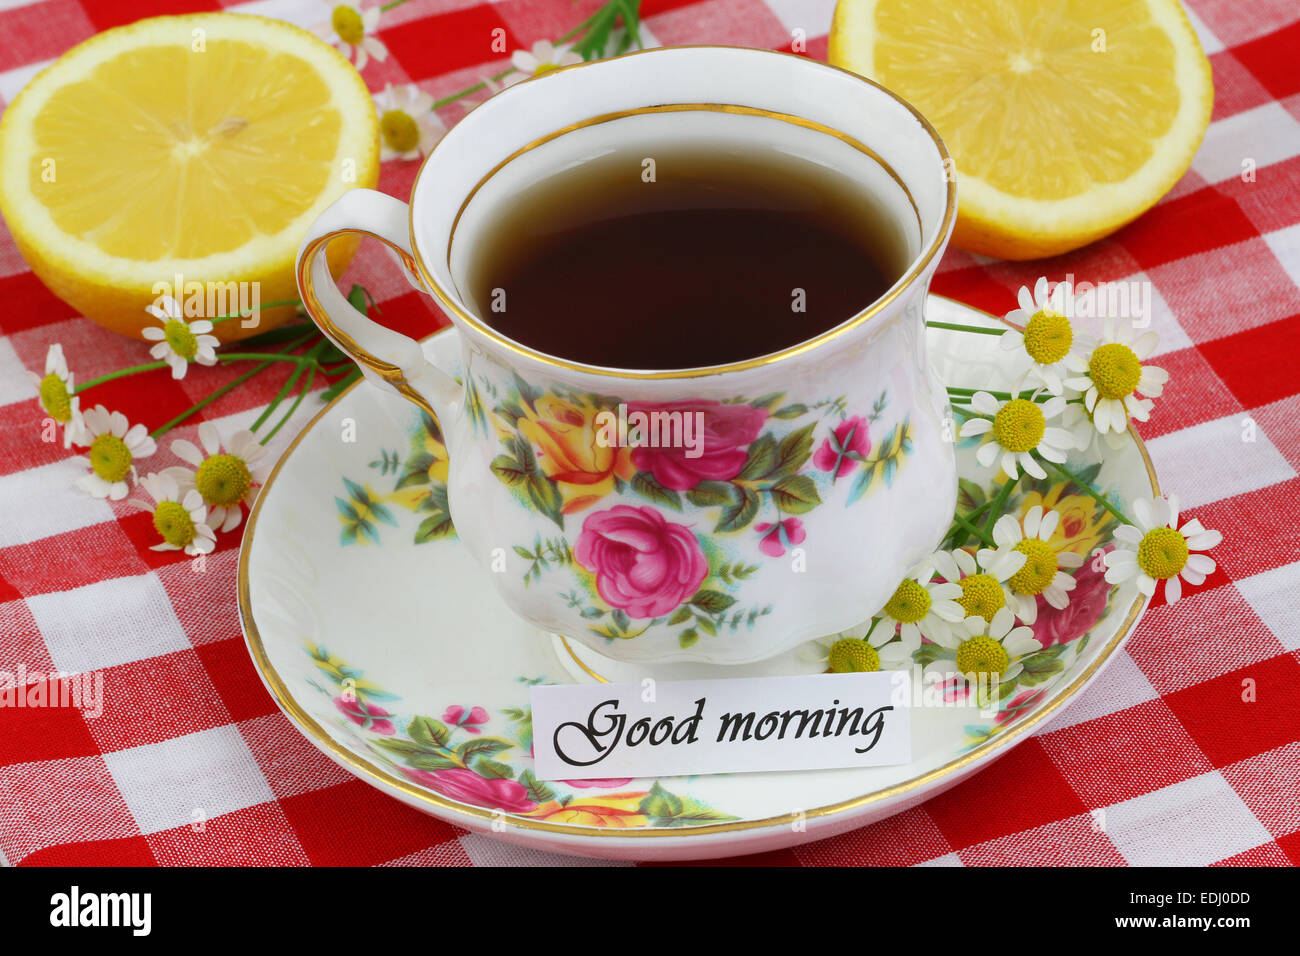 Good Morning Card With Cup Of Tea Stock Photo 77227513 Alamy